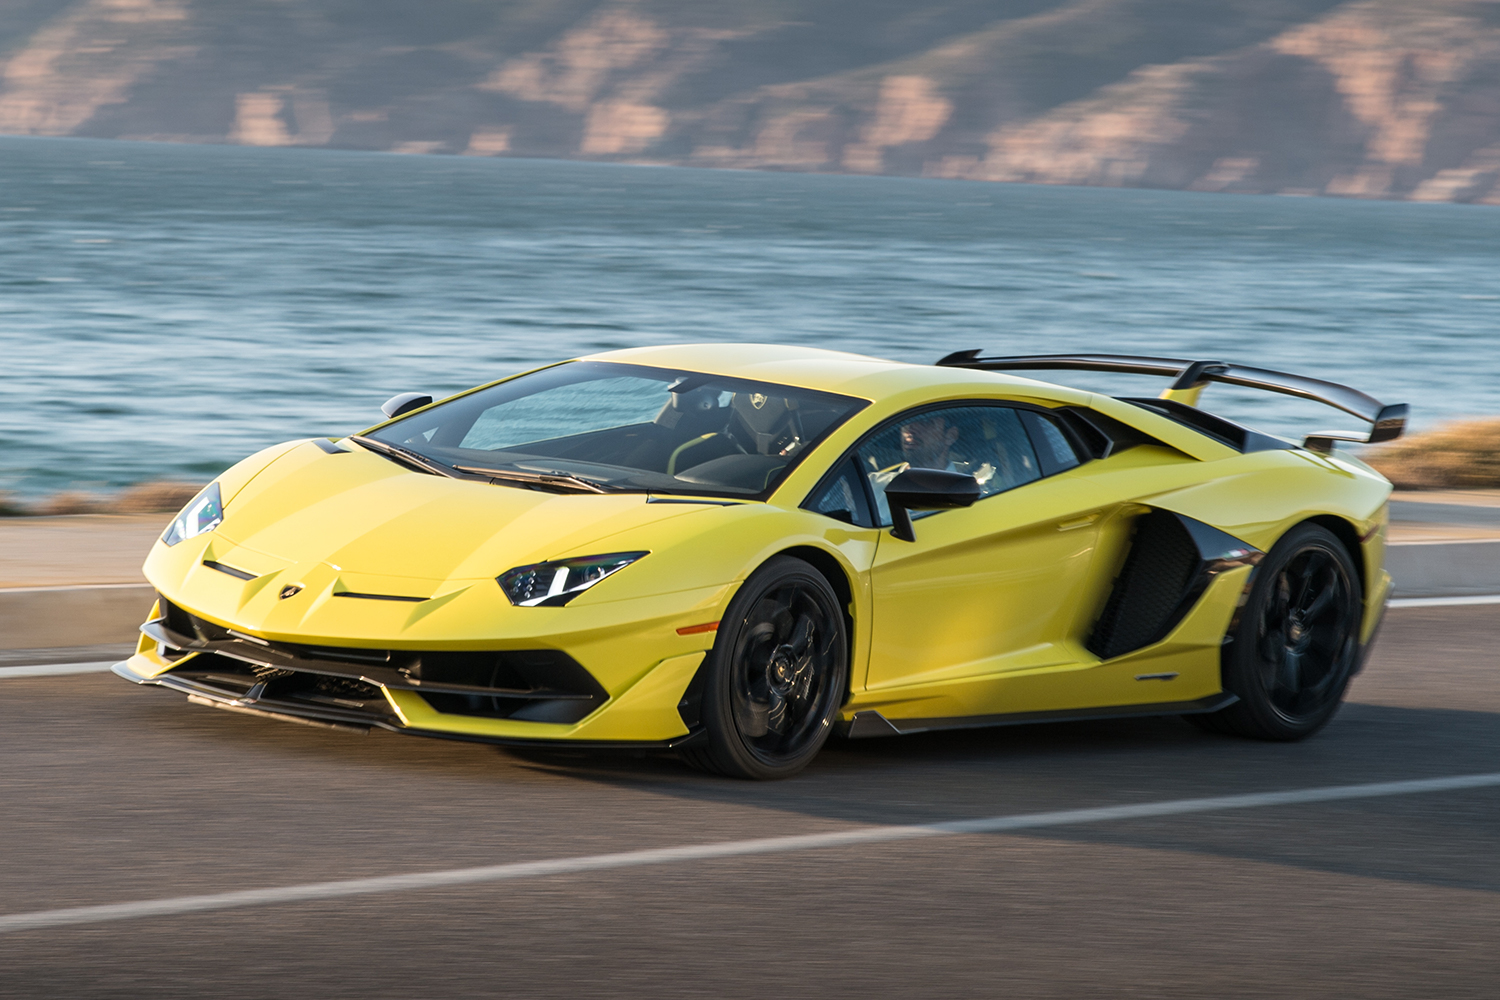 You May Soon Be Able To Buy Stock In Lamborghini Insidehook